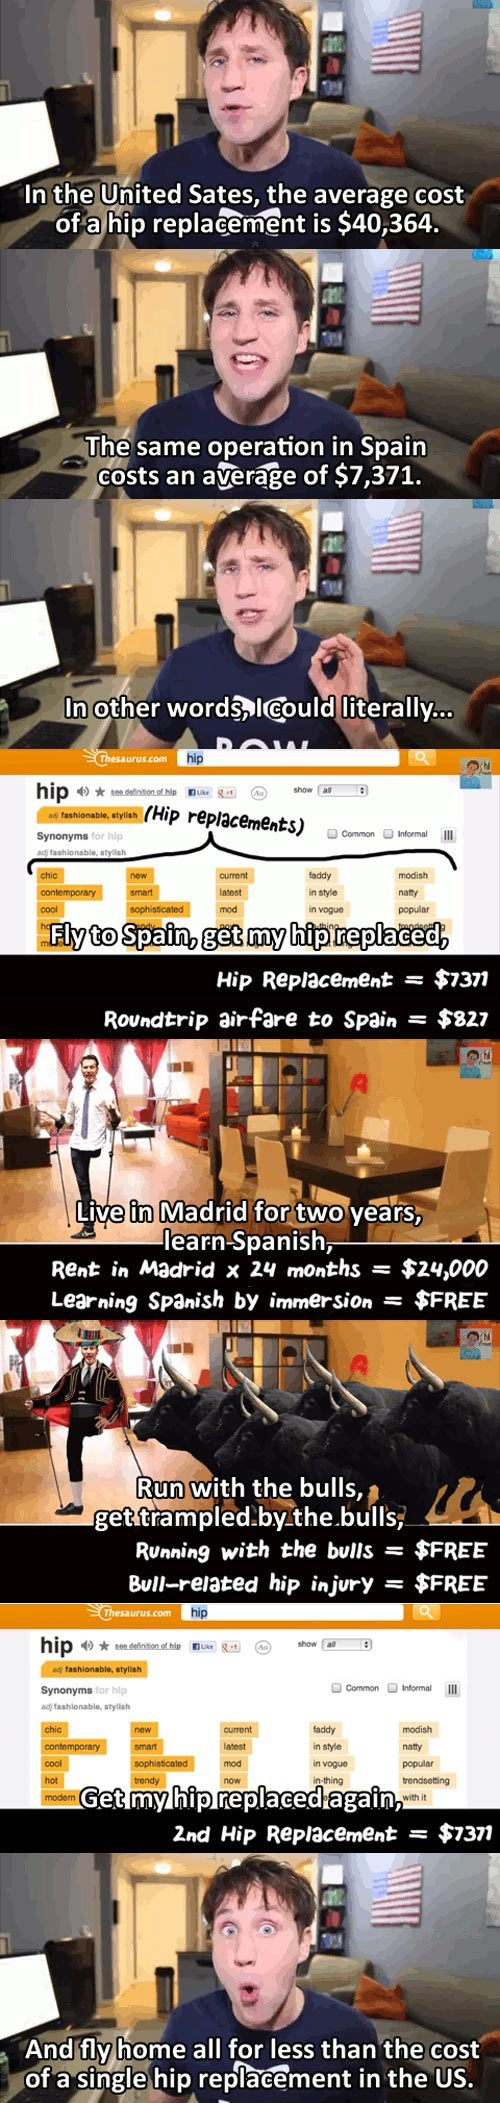 hip replacement insurance medicine Spain america